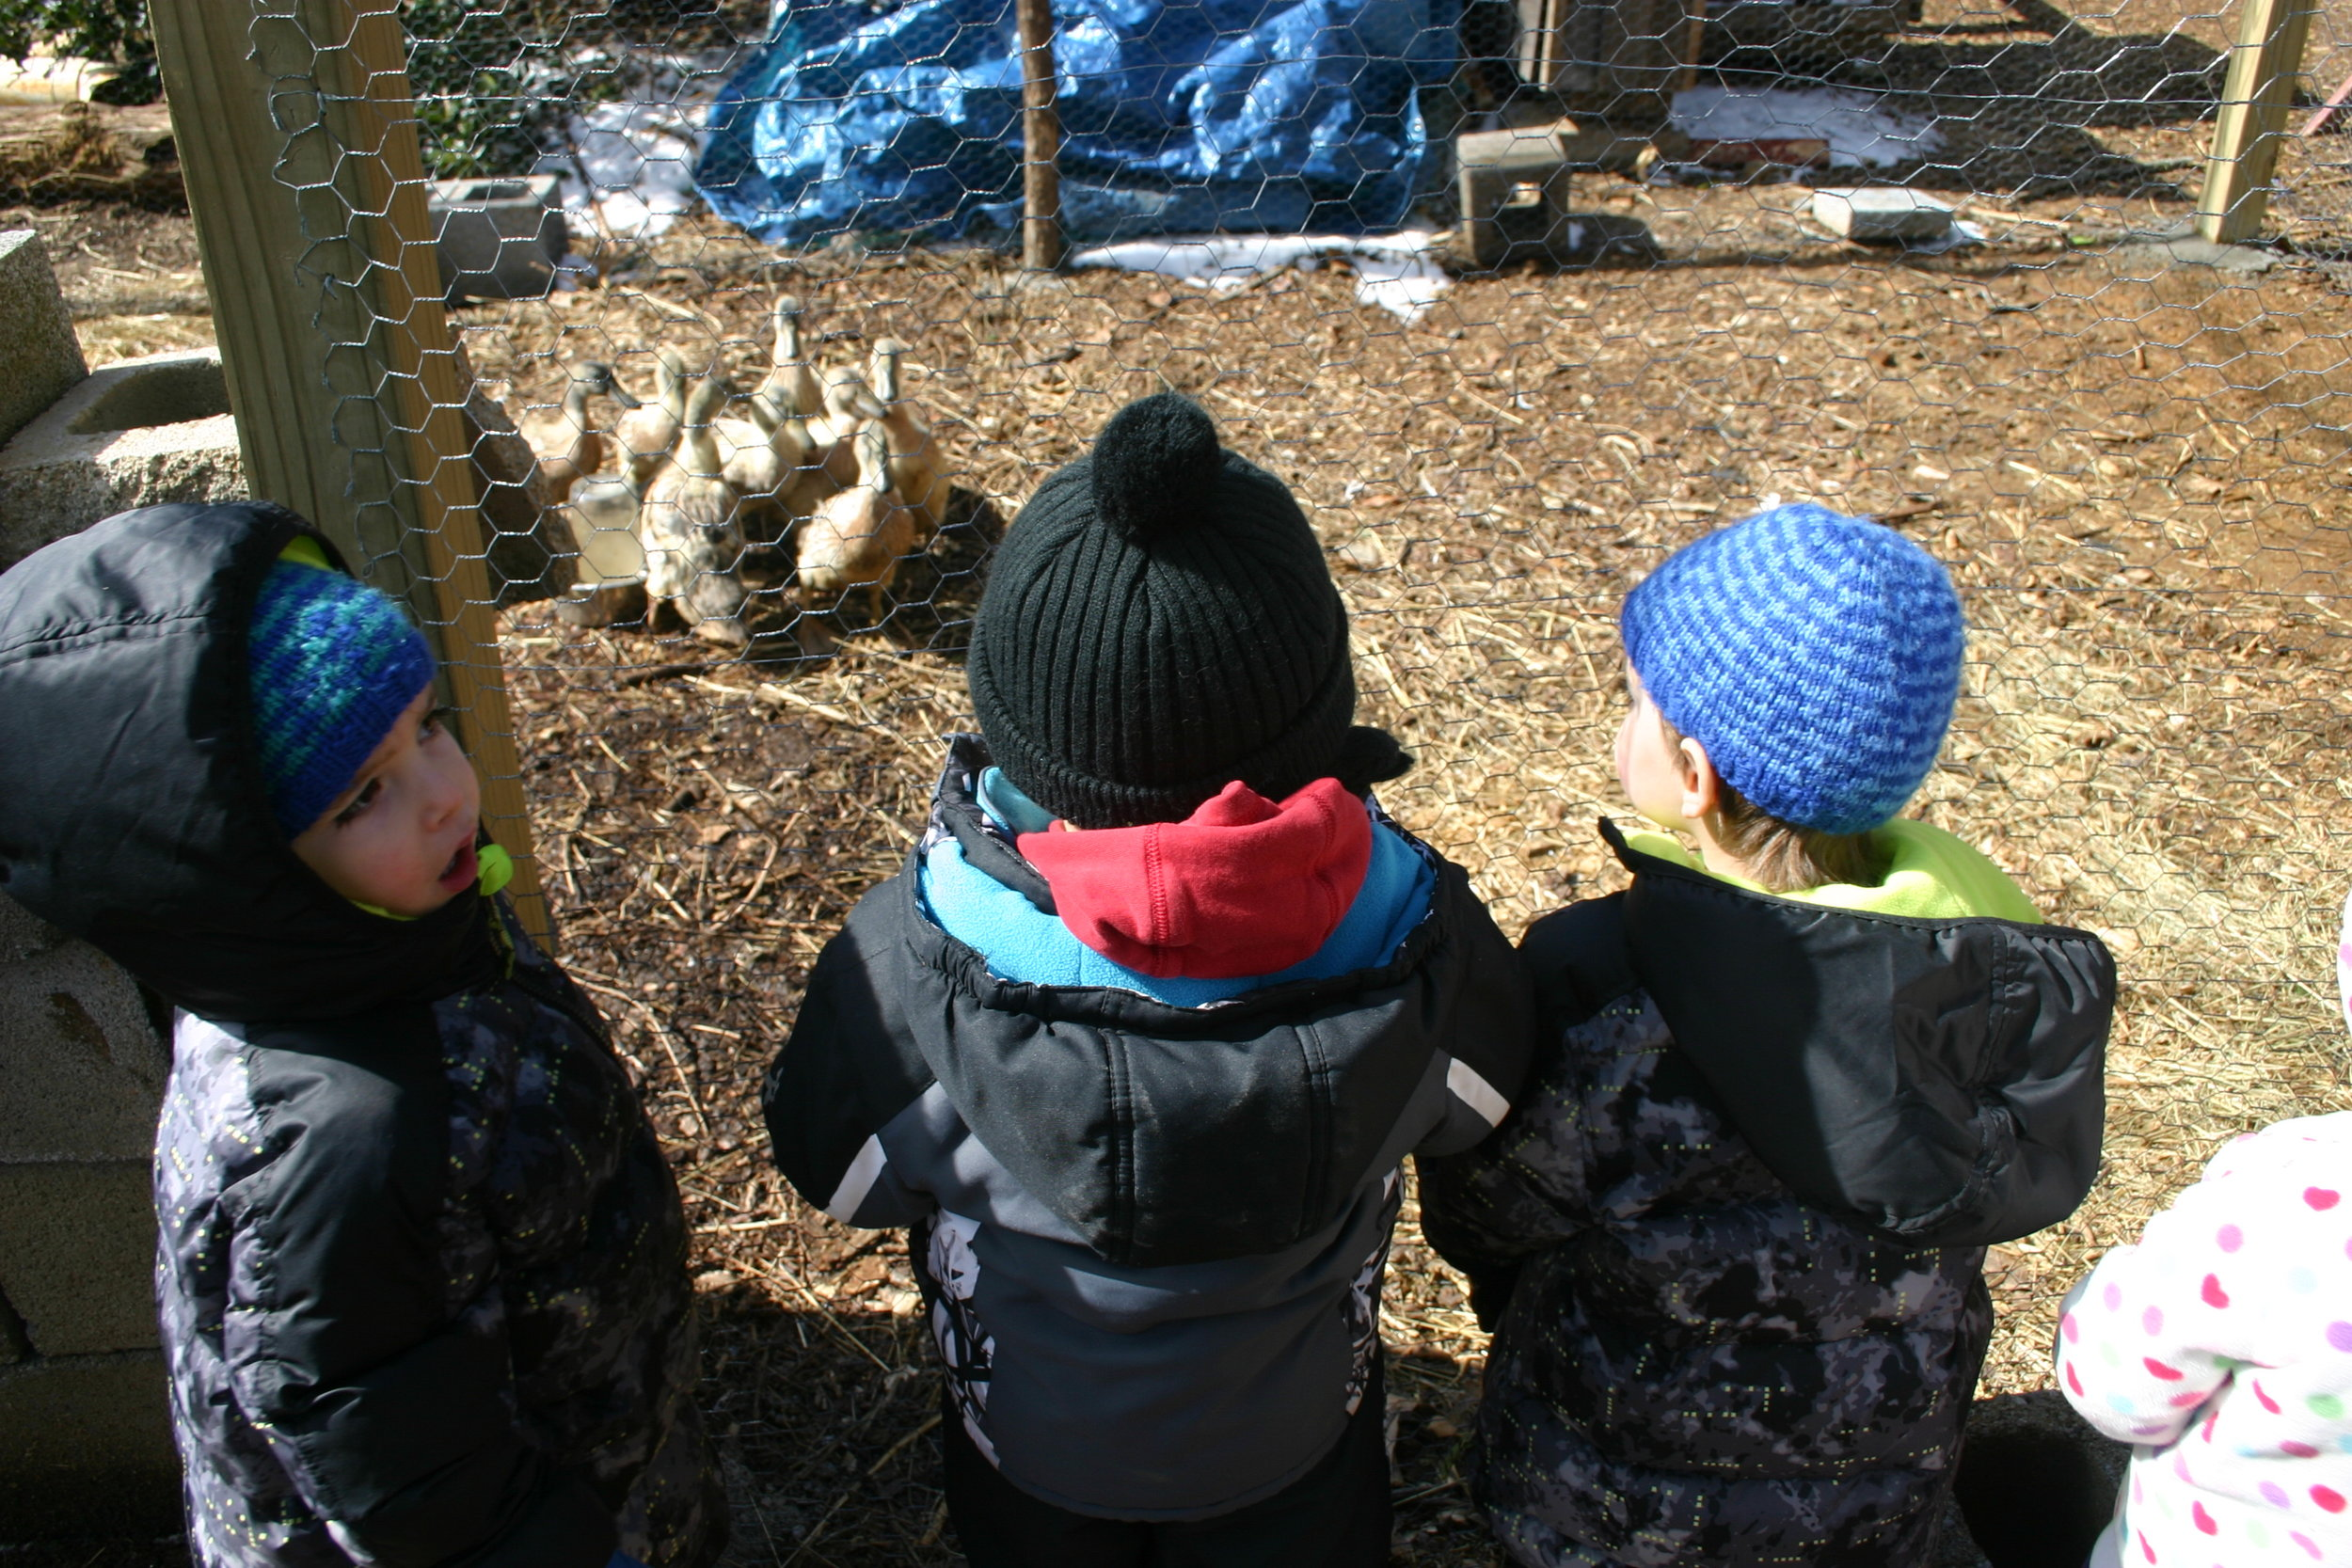 children watching the duck eat boiled potatoes for treat